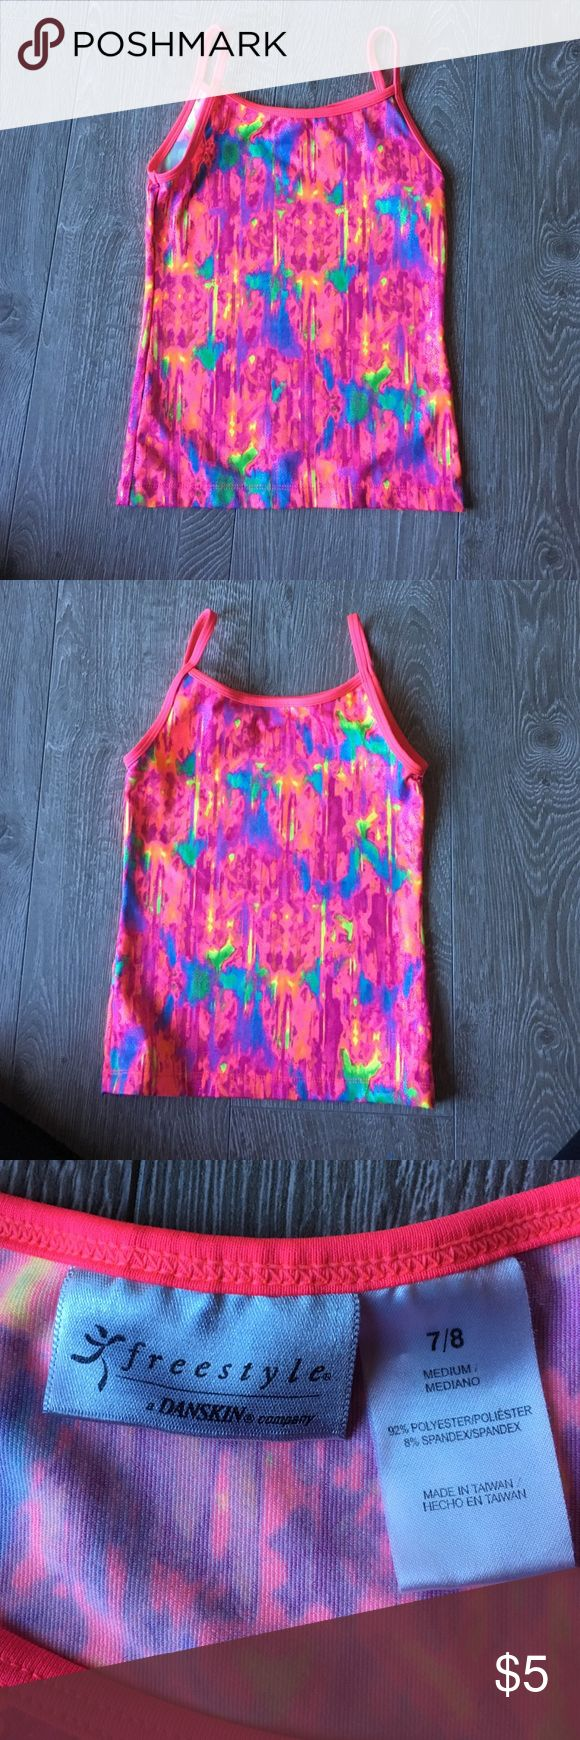 Girls gymnastics top size 7/8 Girls gymnastics top . Never worn size 7/8. Bundle with other cute kids stuff I have listed! Danskin Shirts & Tops Tank Tops